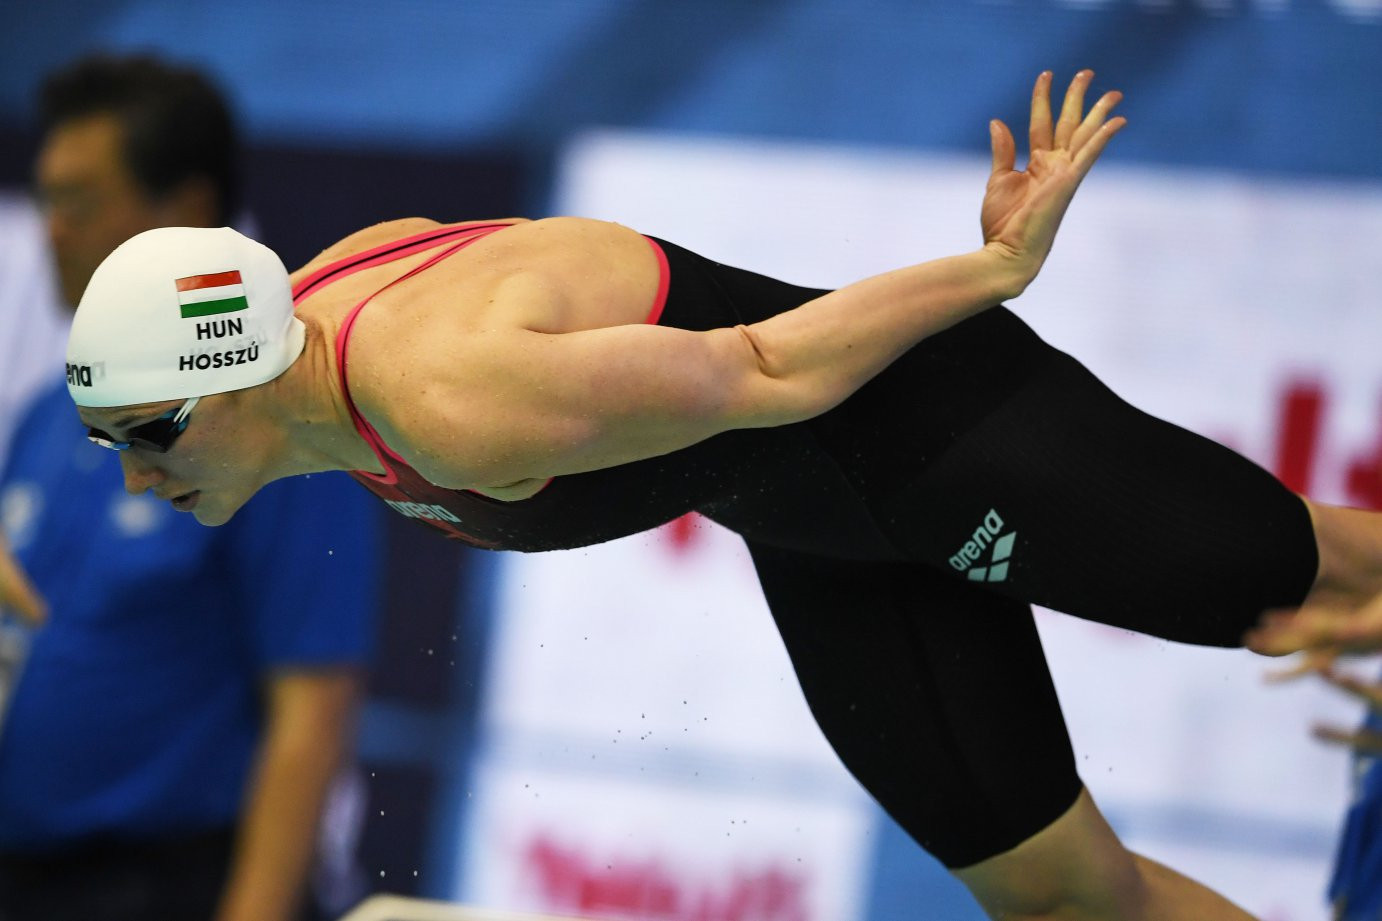 Katinka Hosszu of Hungary won the latest match-up with her perennial rival Sarah Sjostrum at the FINA World Cup in Tokyo ©FINA